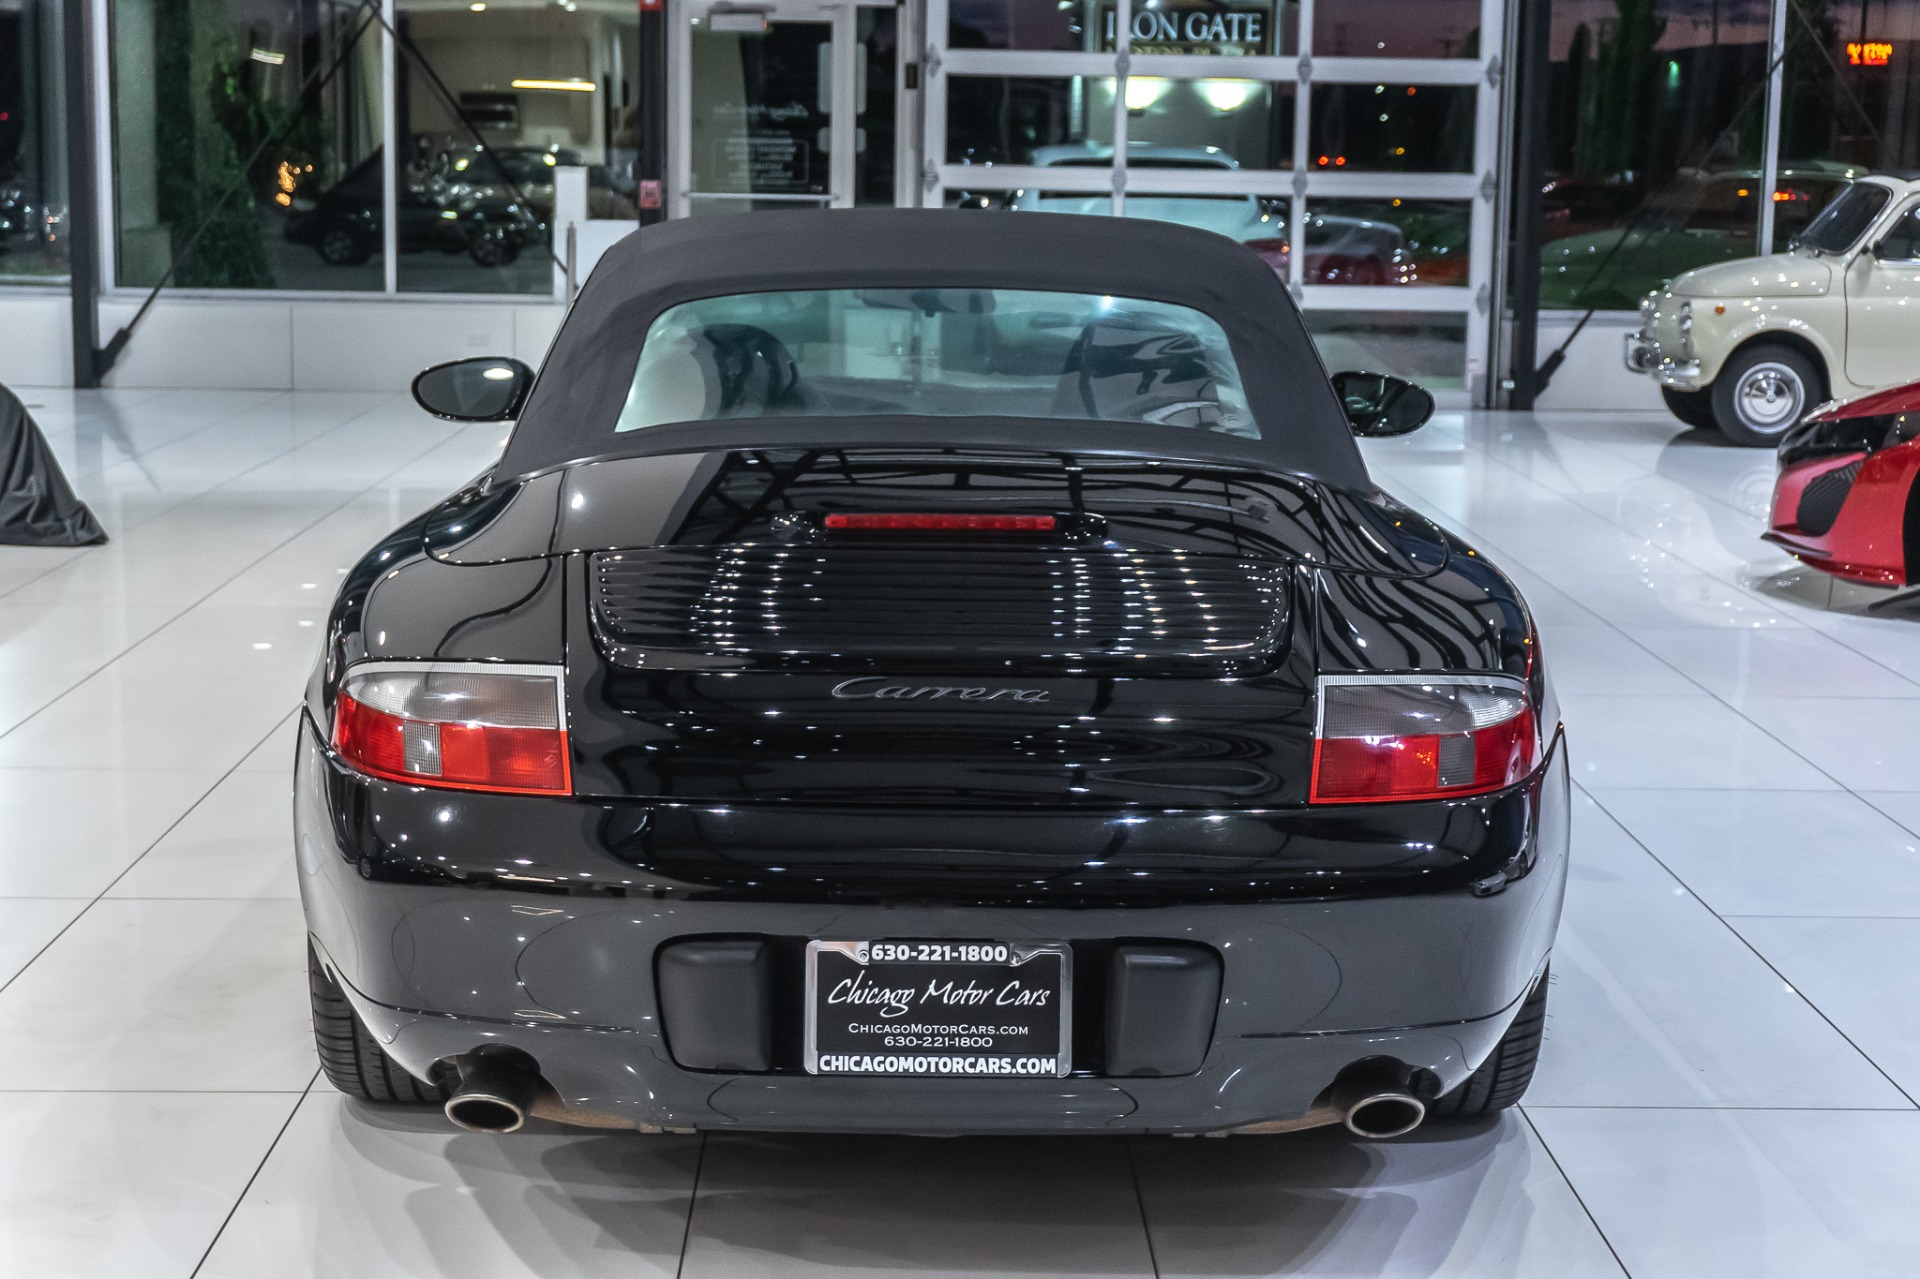 Used-2000-Porsche-911-Carrera-Cabriolet-6-SPEED-MANUAL-TRANSMISSION-SERVICE-HISTORY-NEW-TIRES